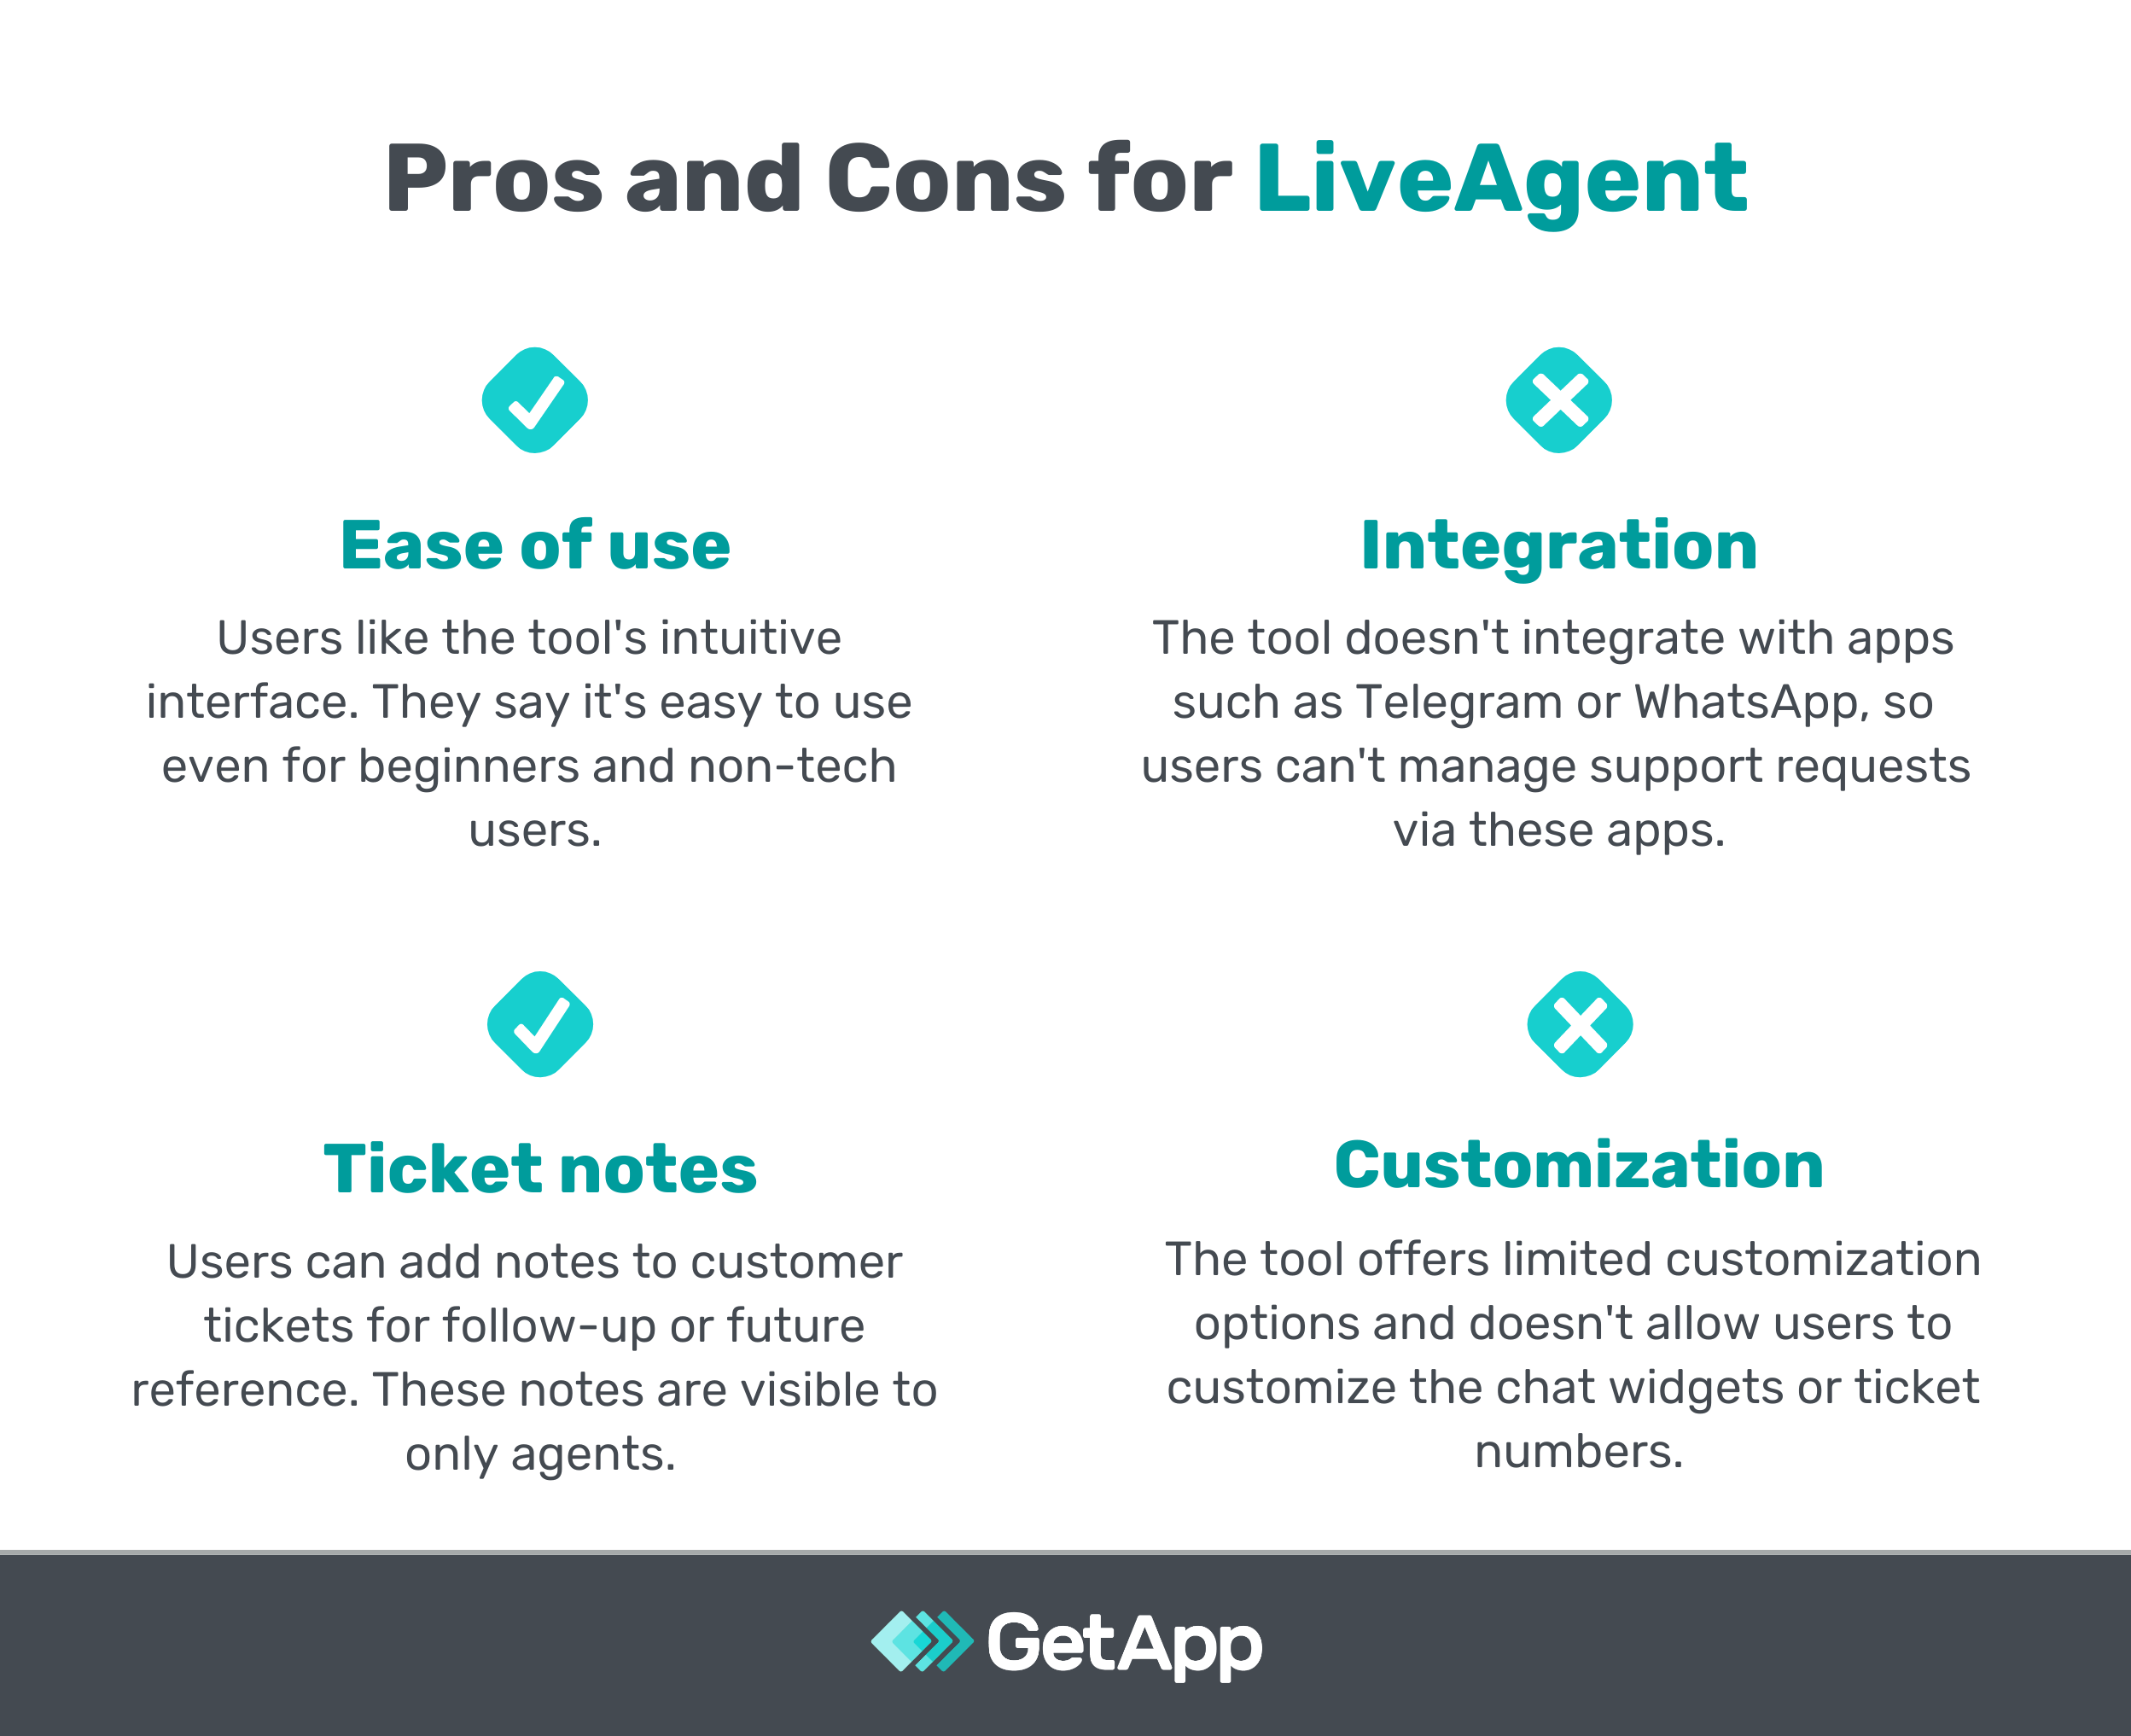 Pros and cons for LiveAgent